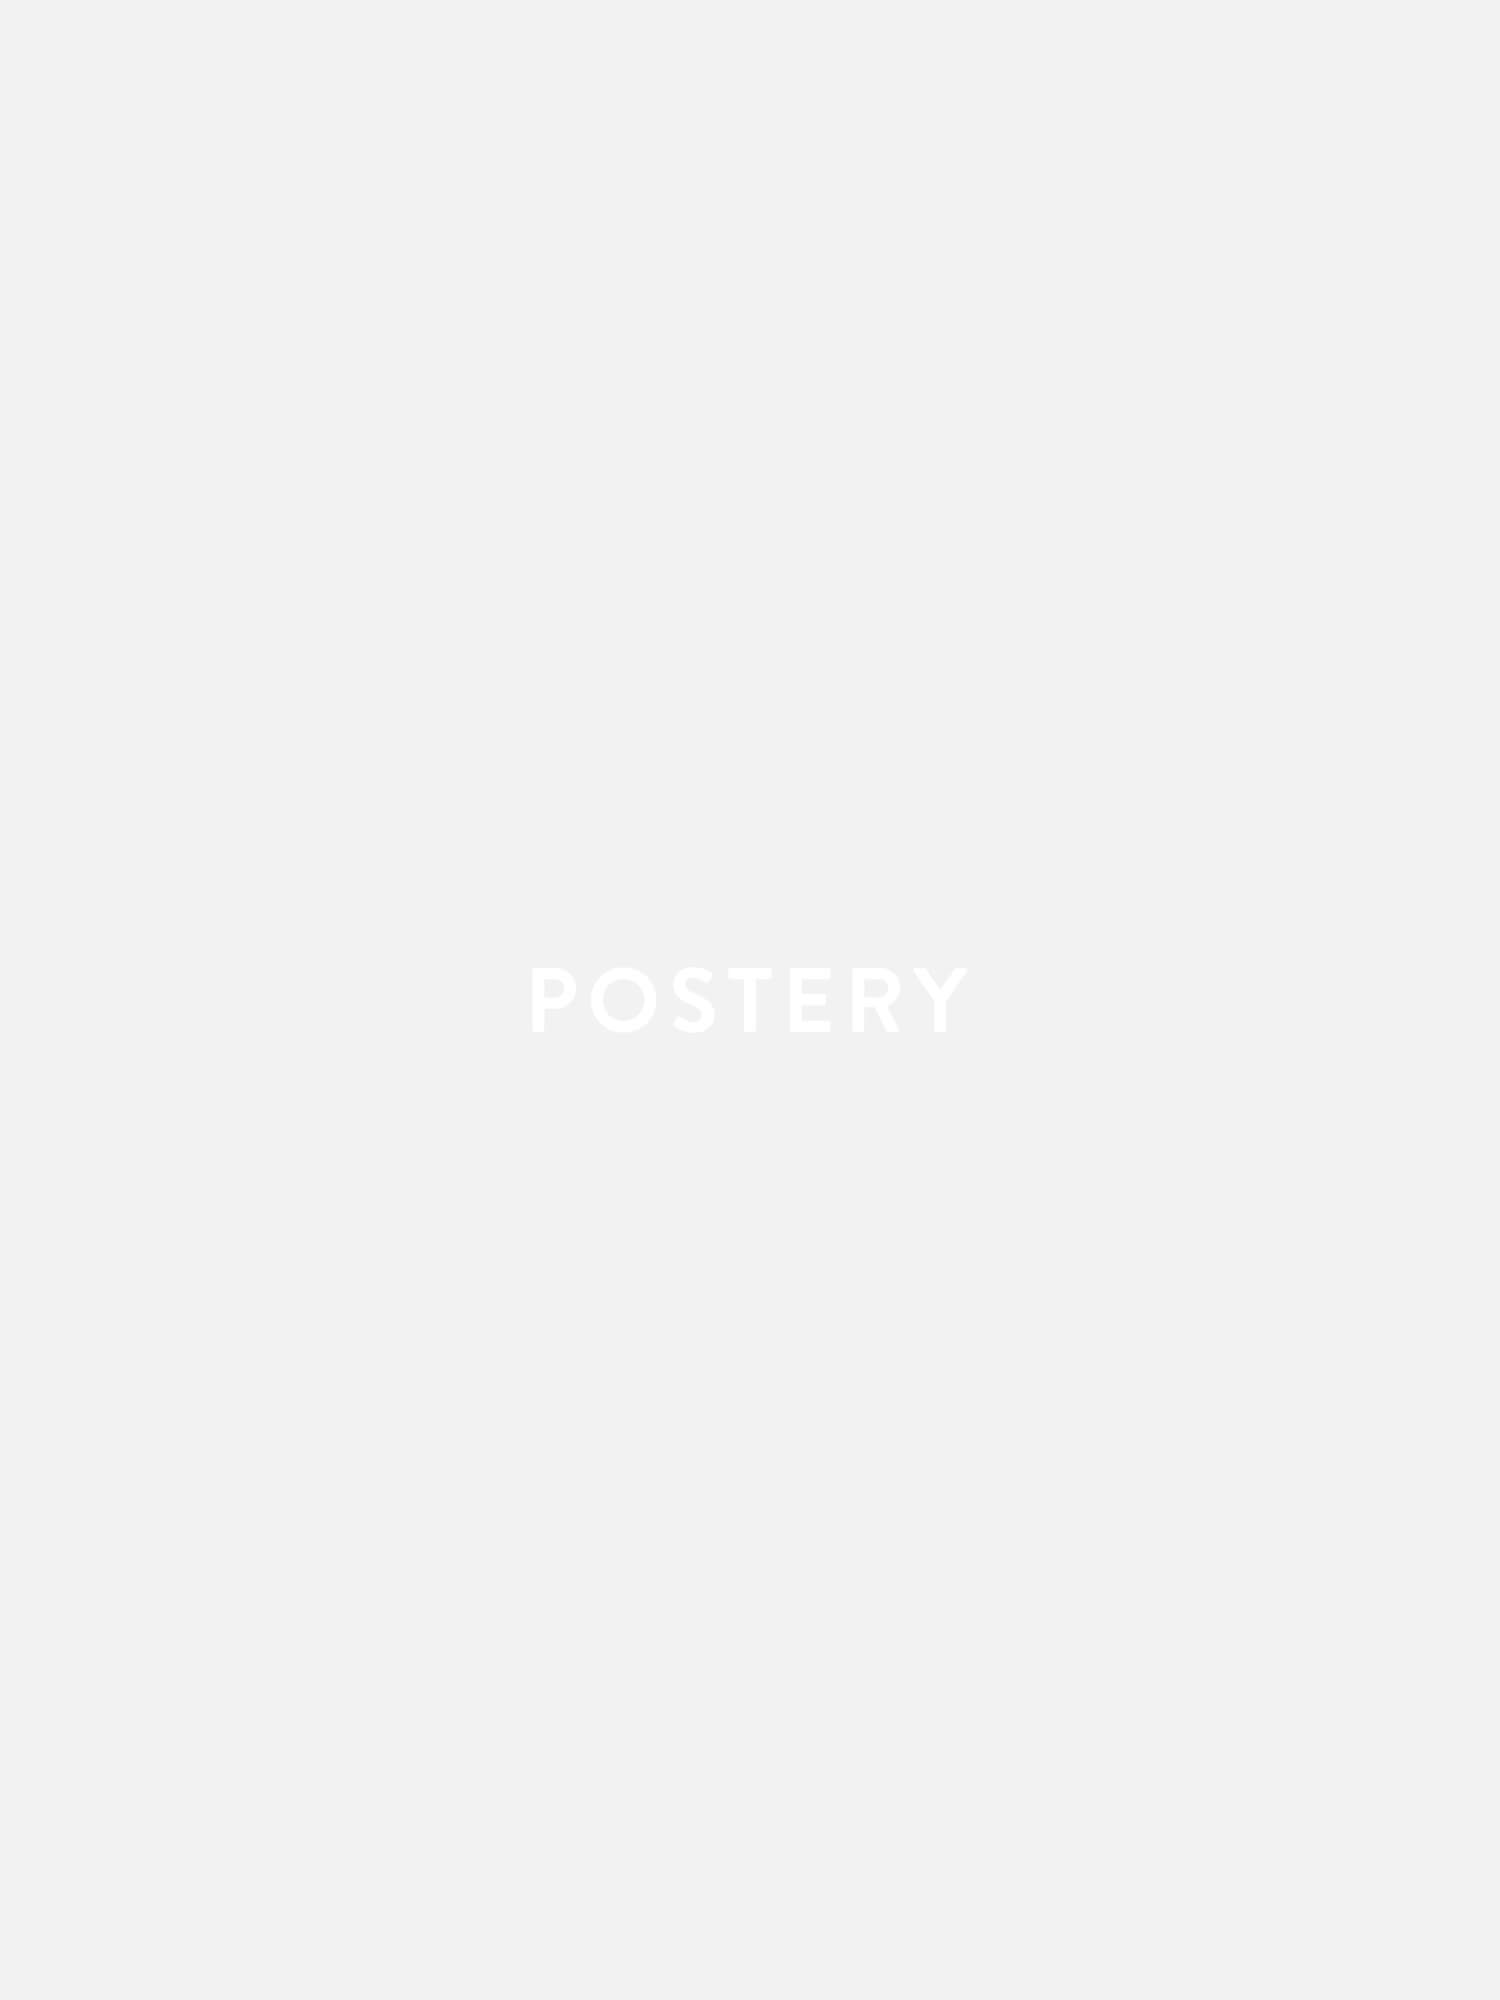 Bunny Sleeping Moon Poster